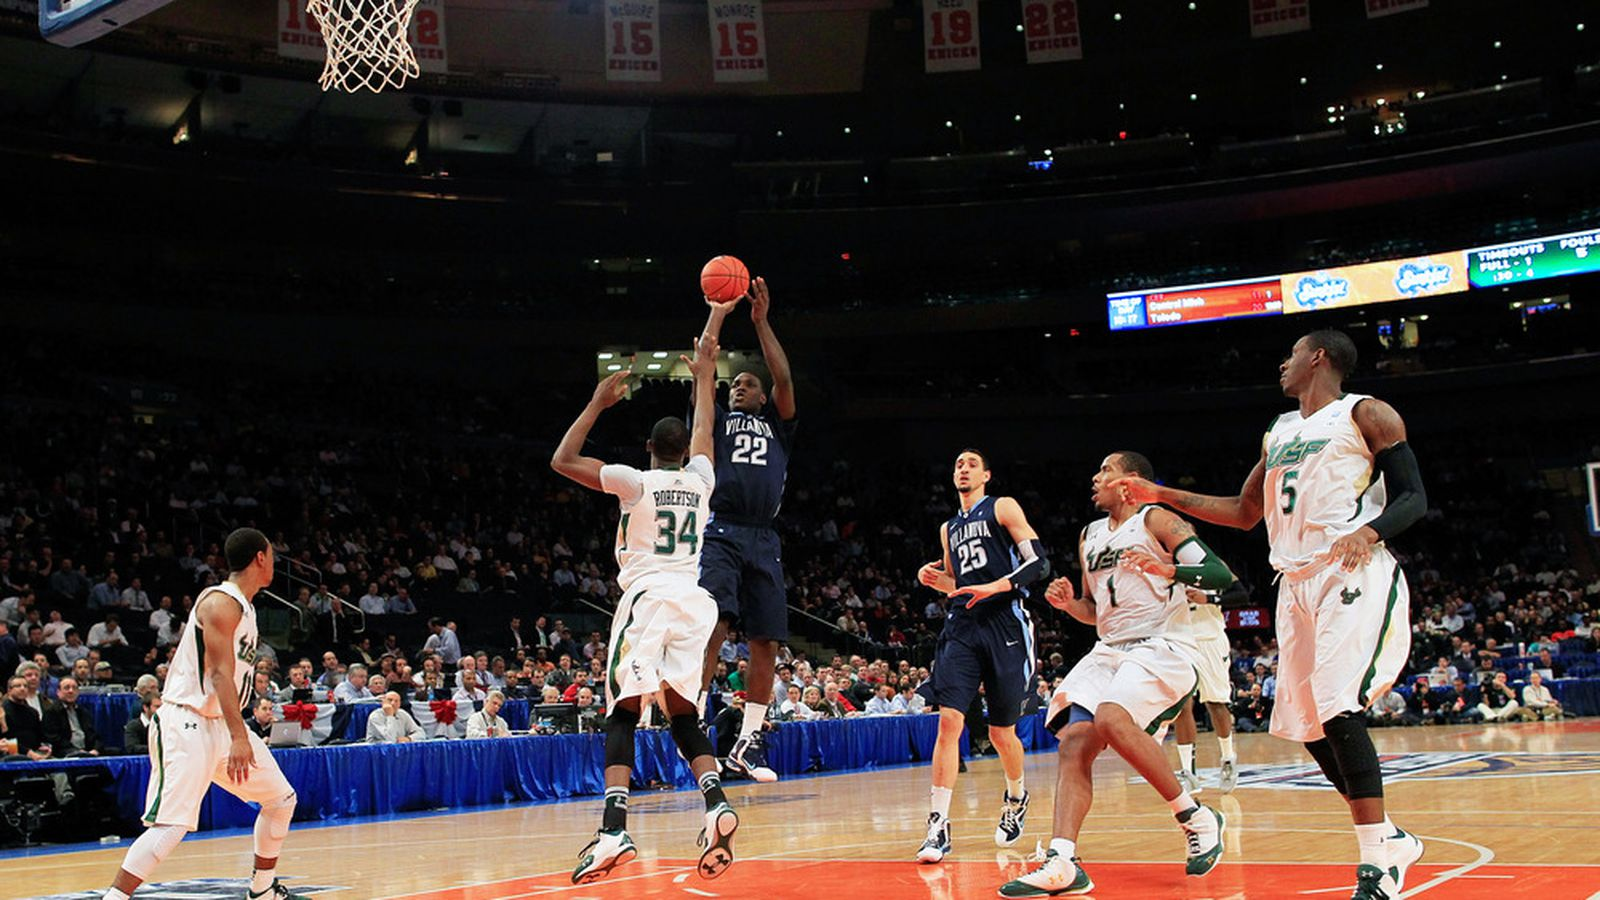 Big east to host 2014 ncaa tournament at msg vu hoops Madison square garden basketball